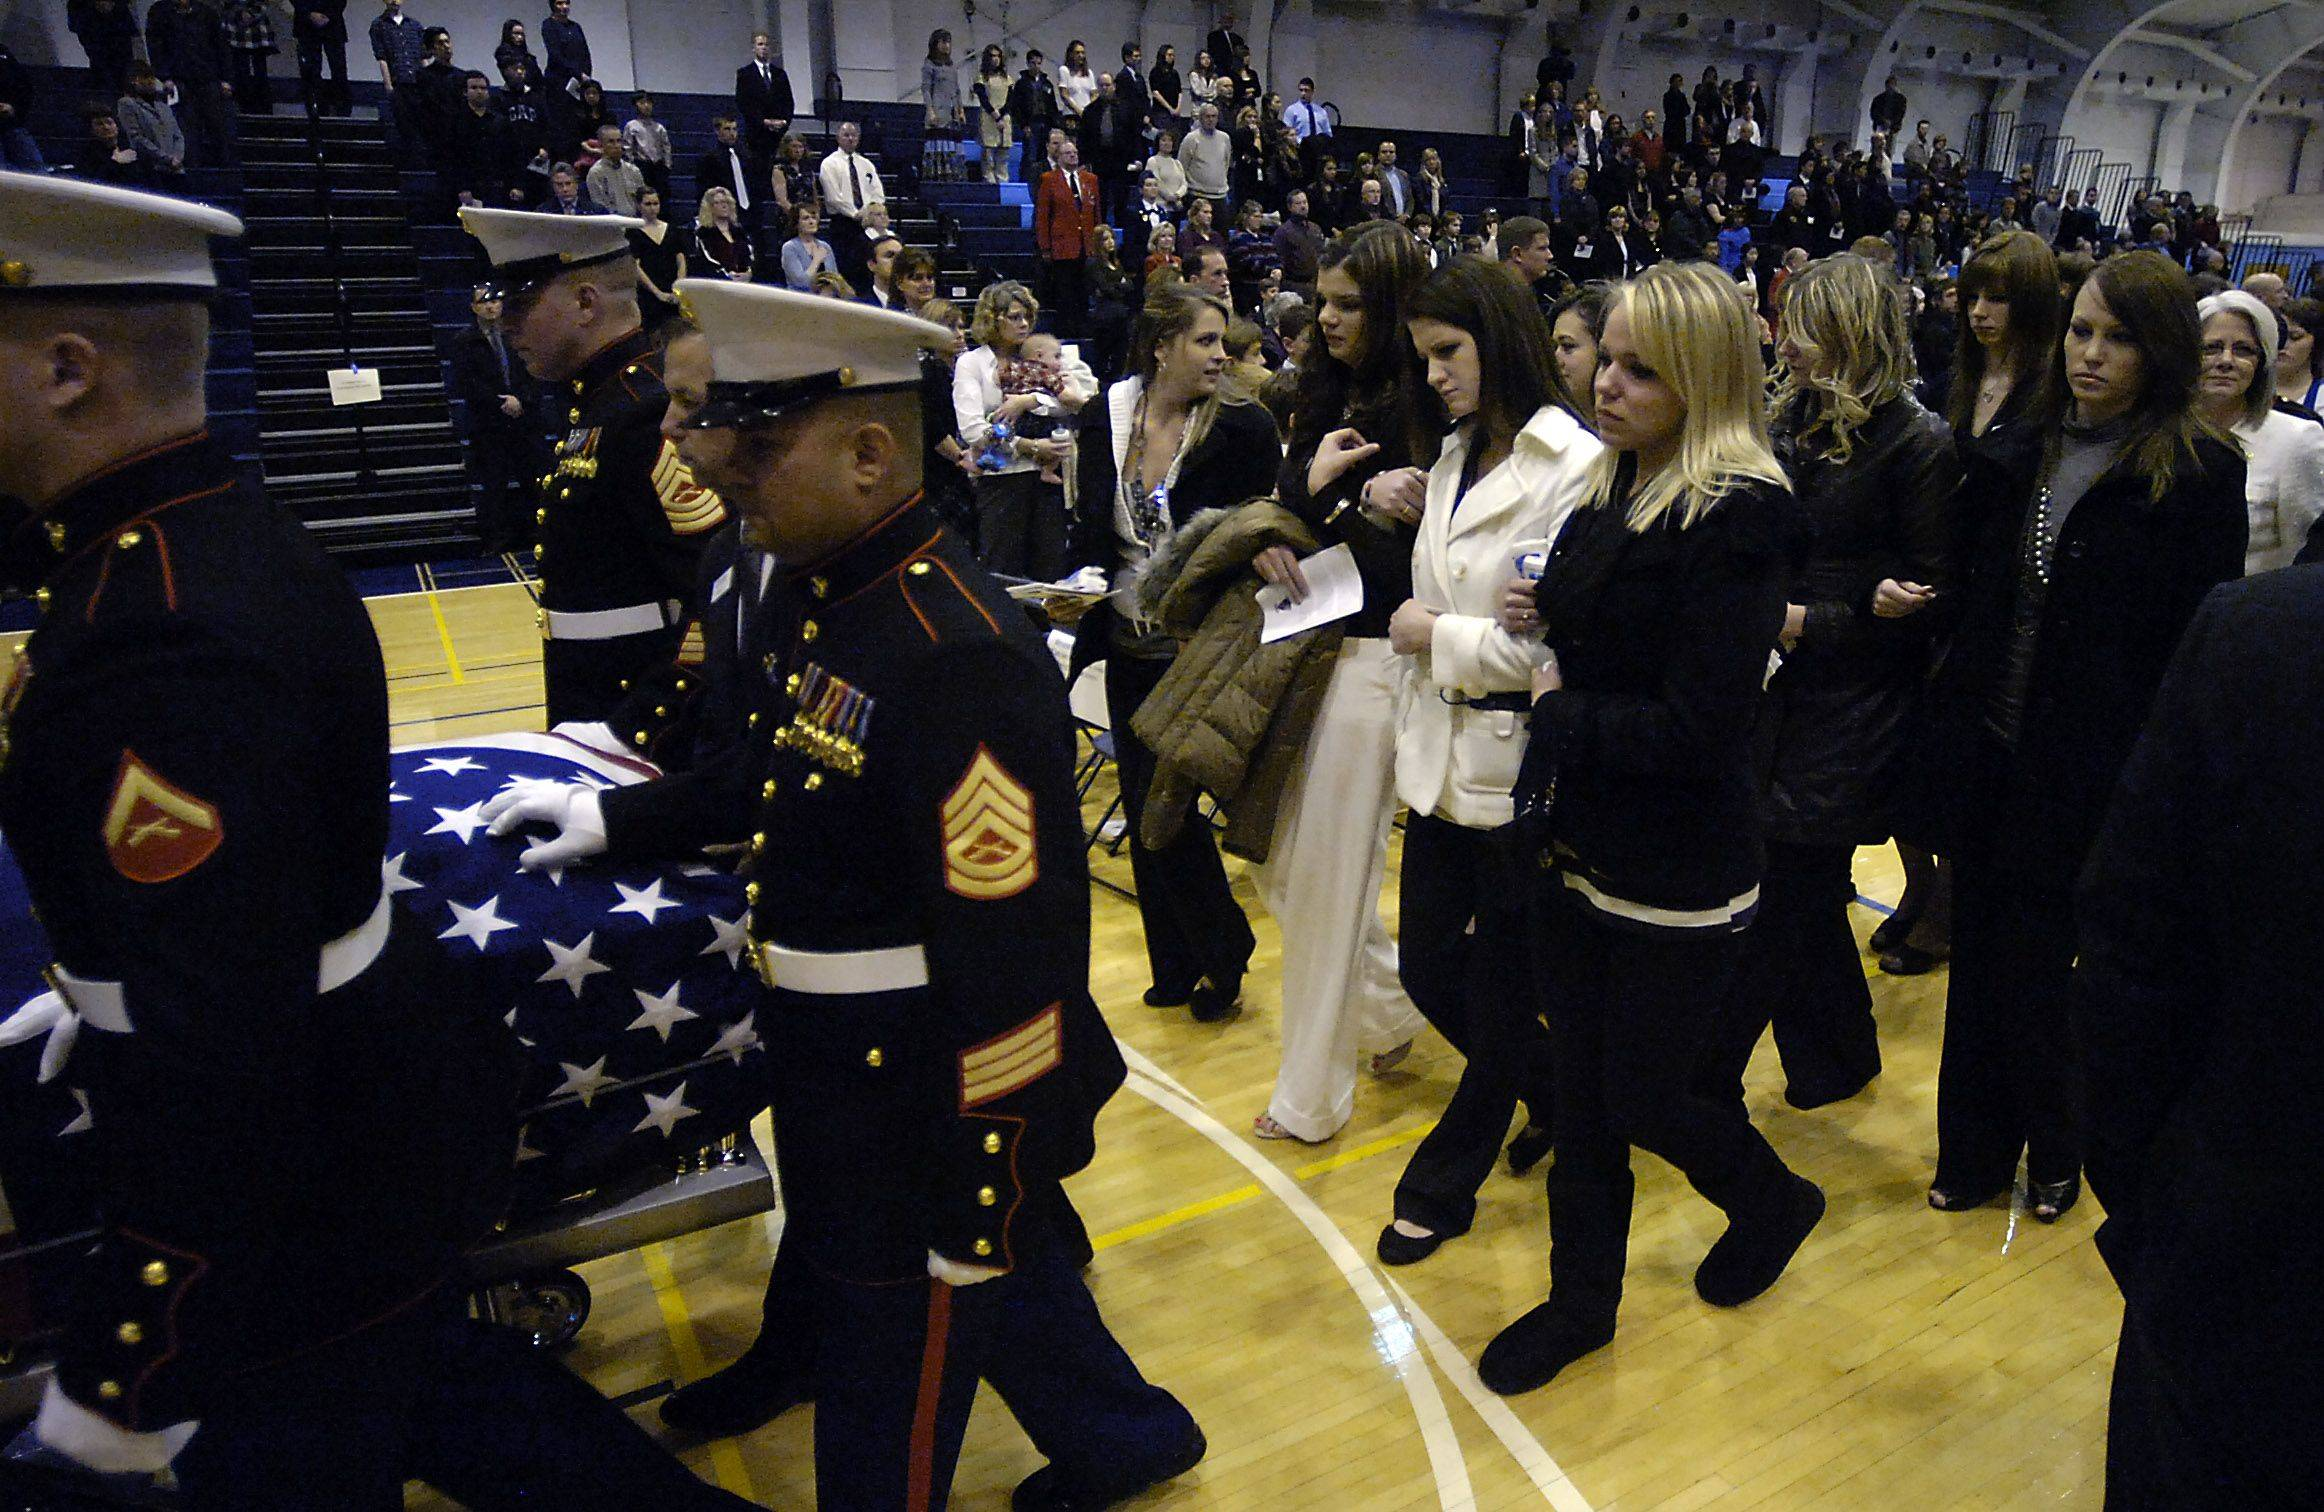 Katie Stack (in white) follows her husband, fallen Marine Lance Corporal James Stack, out of Prospect High School gymnasium after the memorial service in his honor.